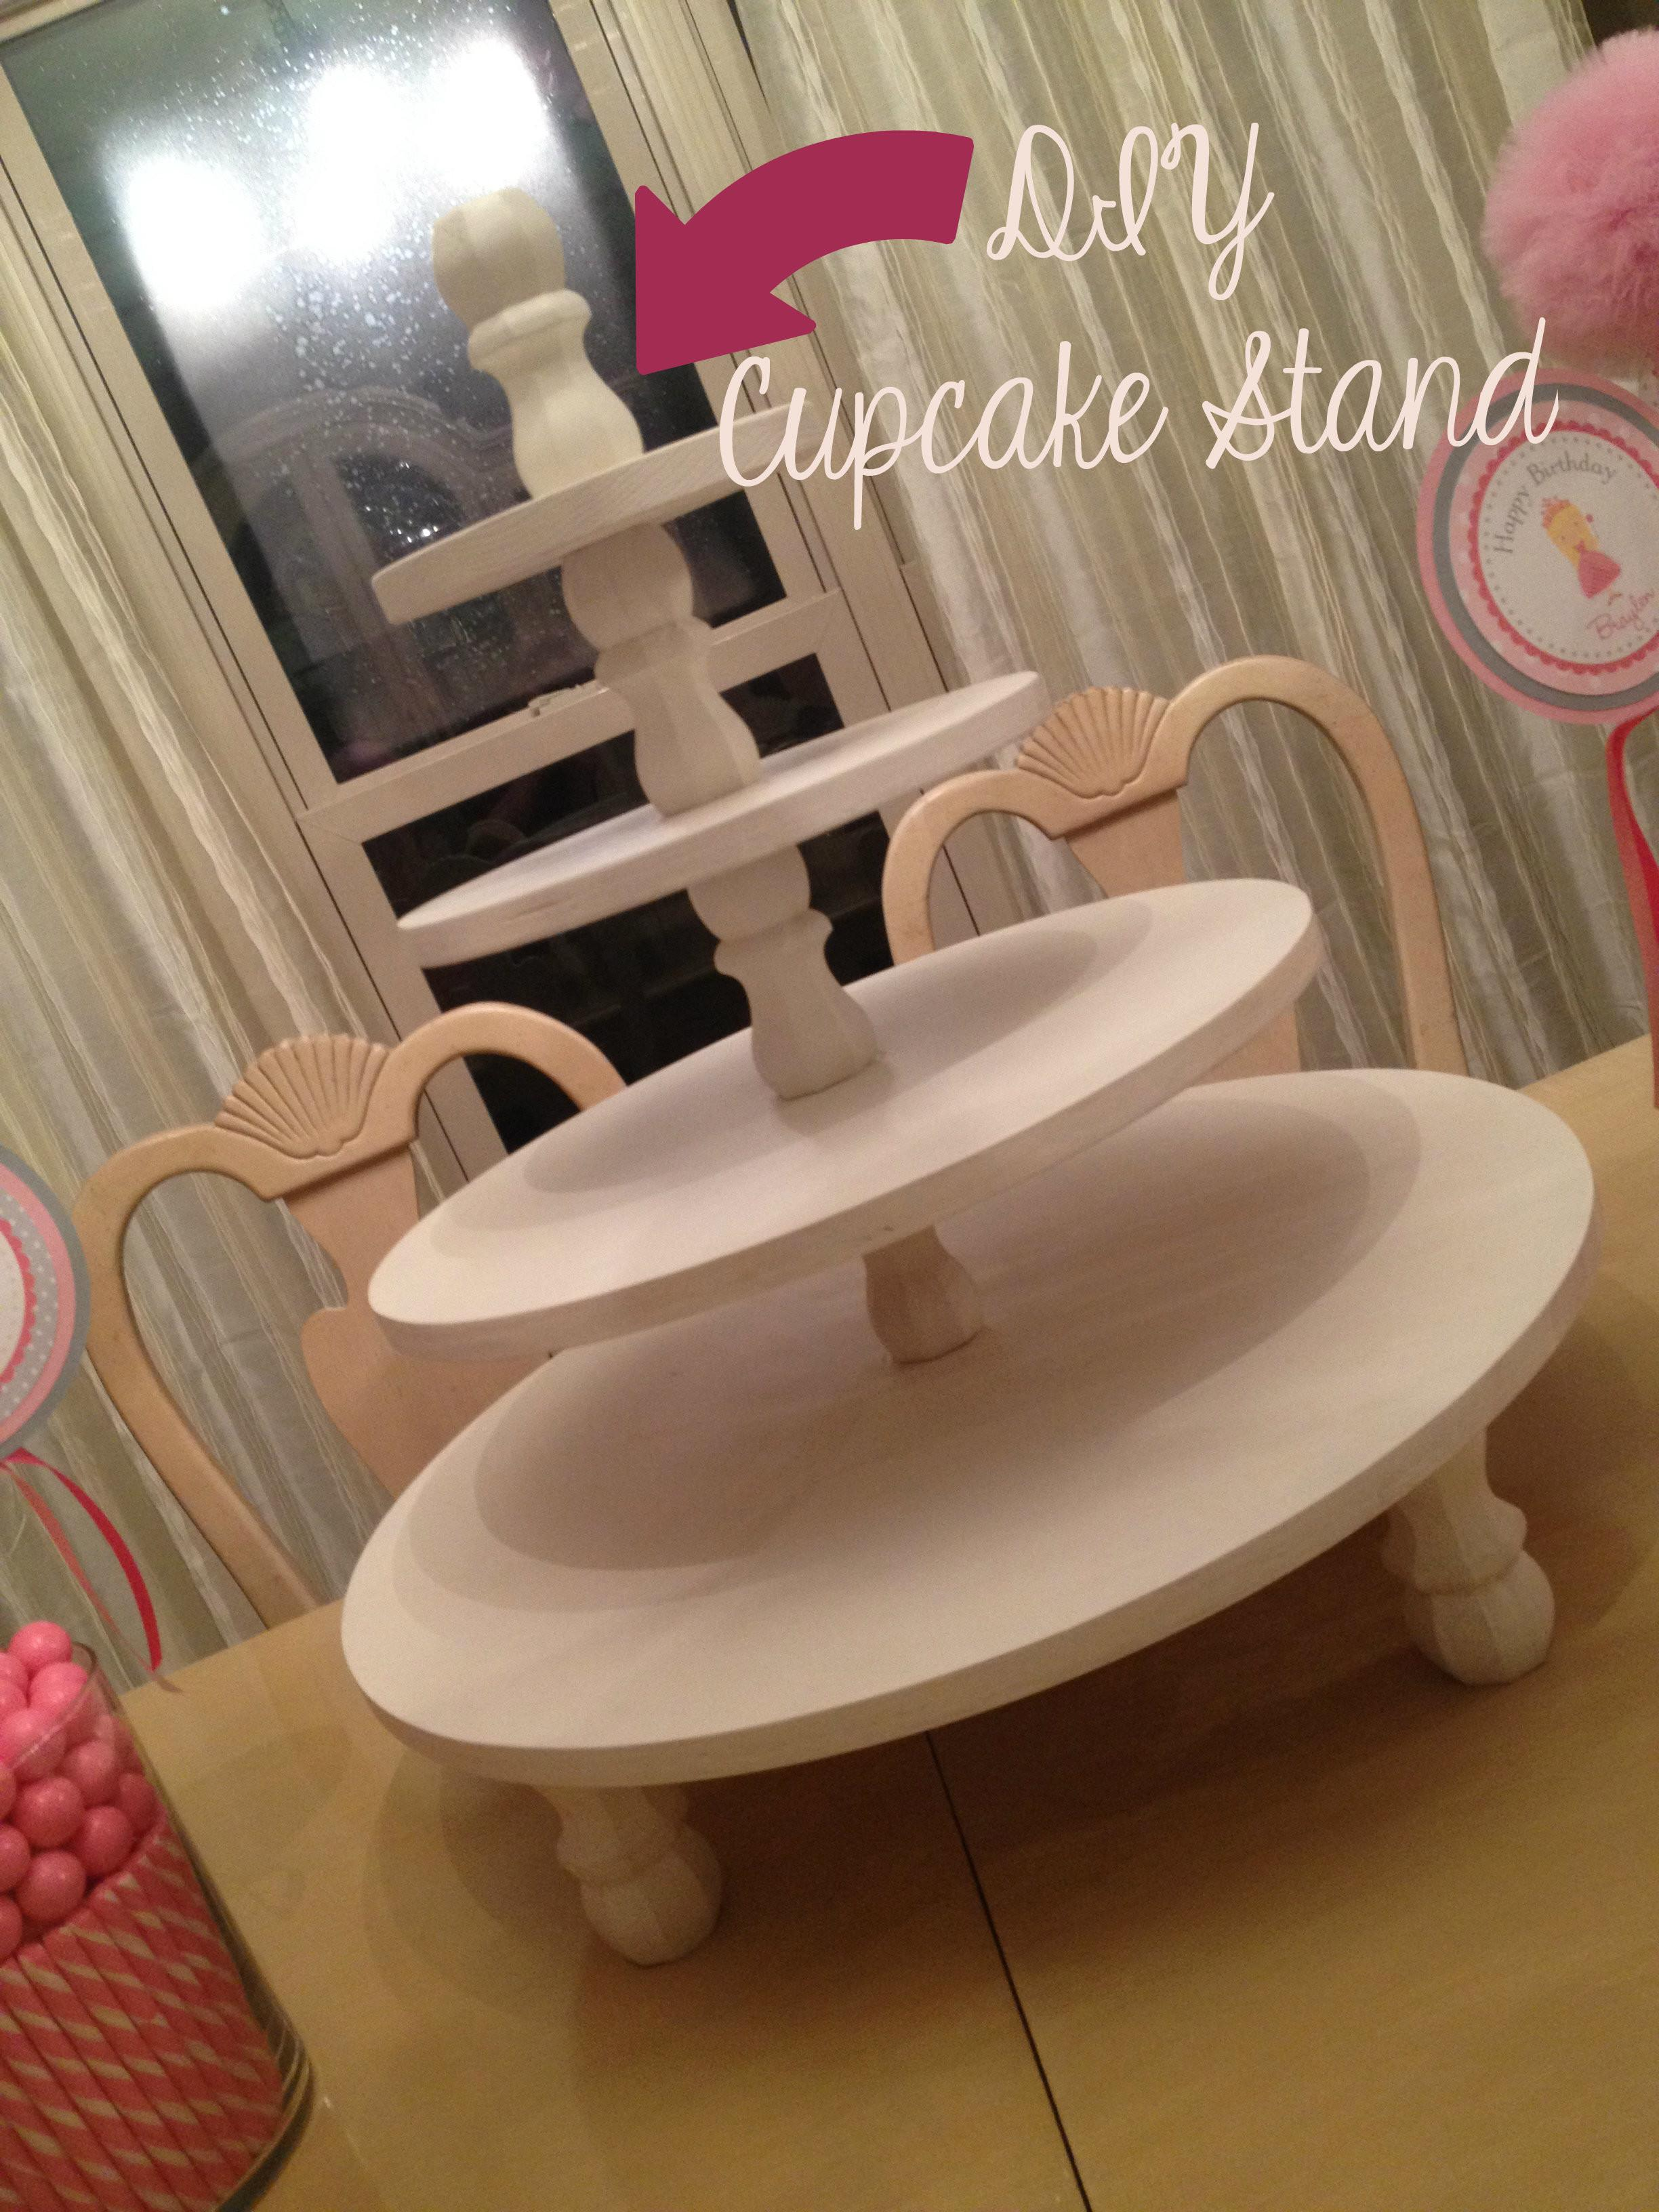 Diy Cupcake Stands Instructions Guide Patterns